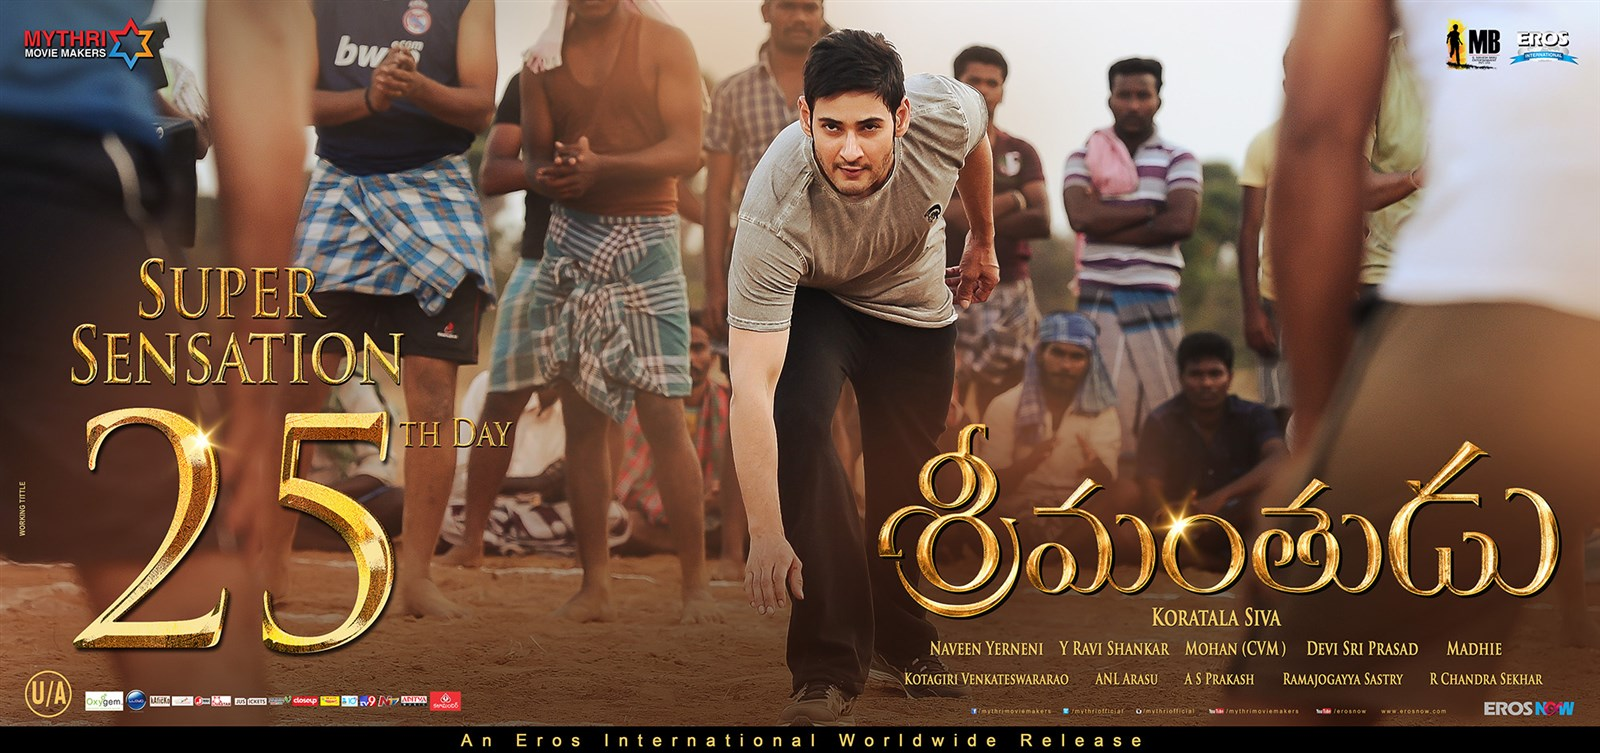 Srimanthudu Ultra Hd All Posters Wallpapers: Srimanthudu Movie 3rd Week Posters, Wallpapers, Photos Hd